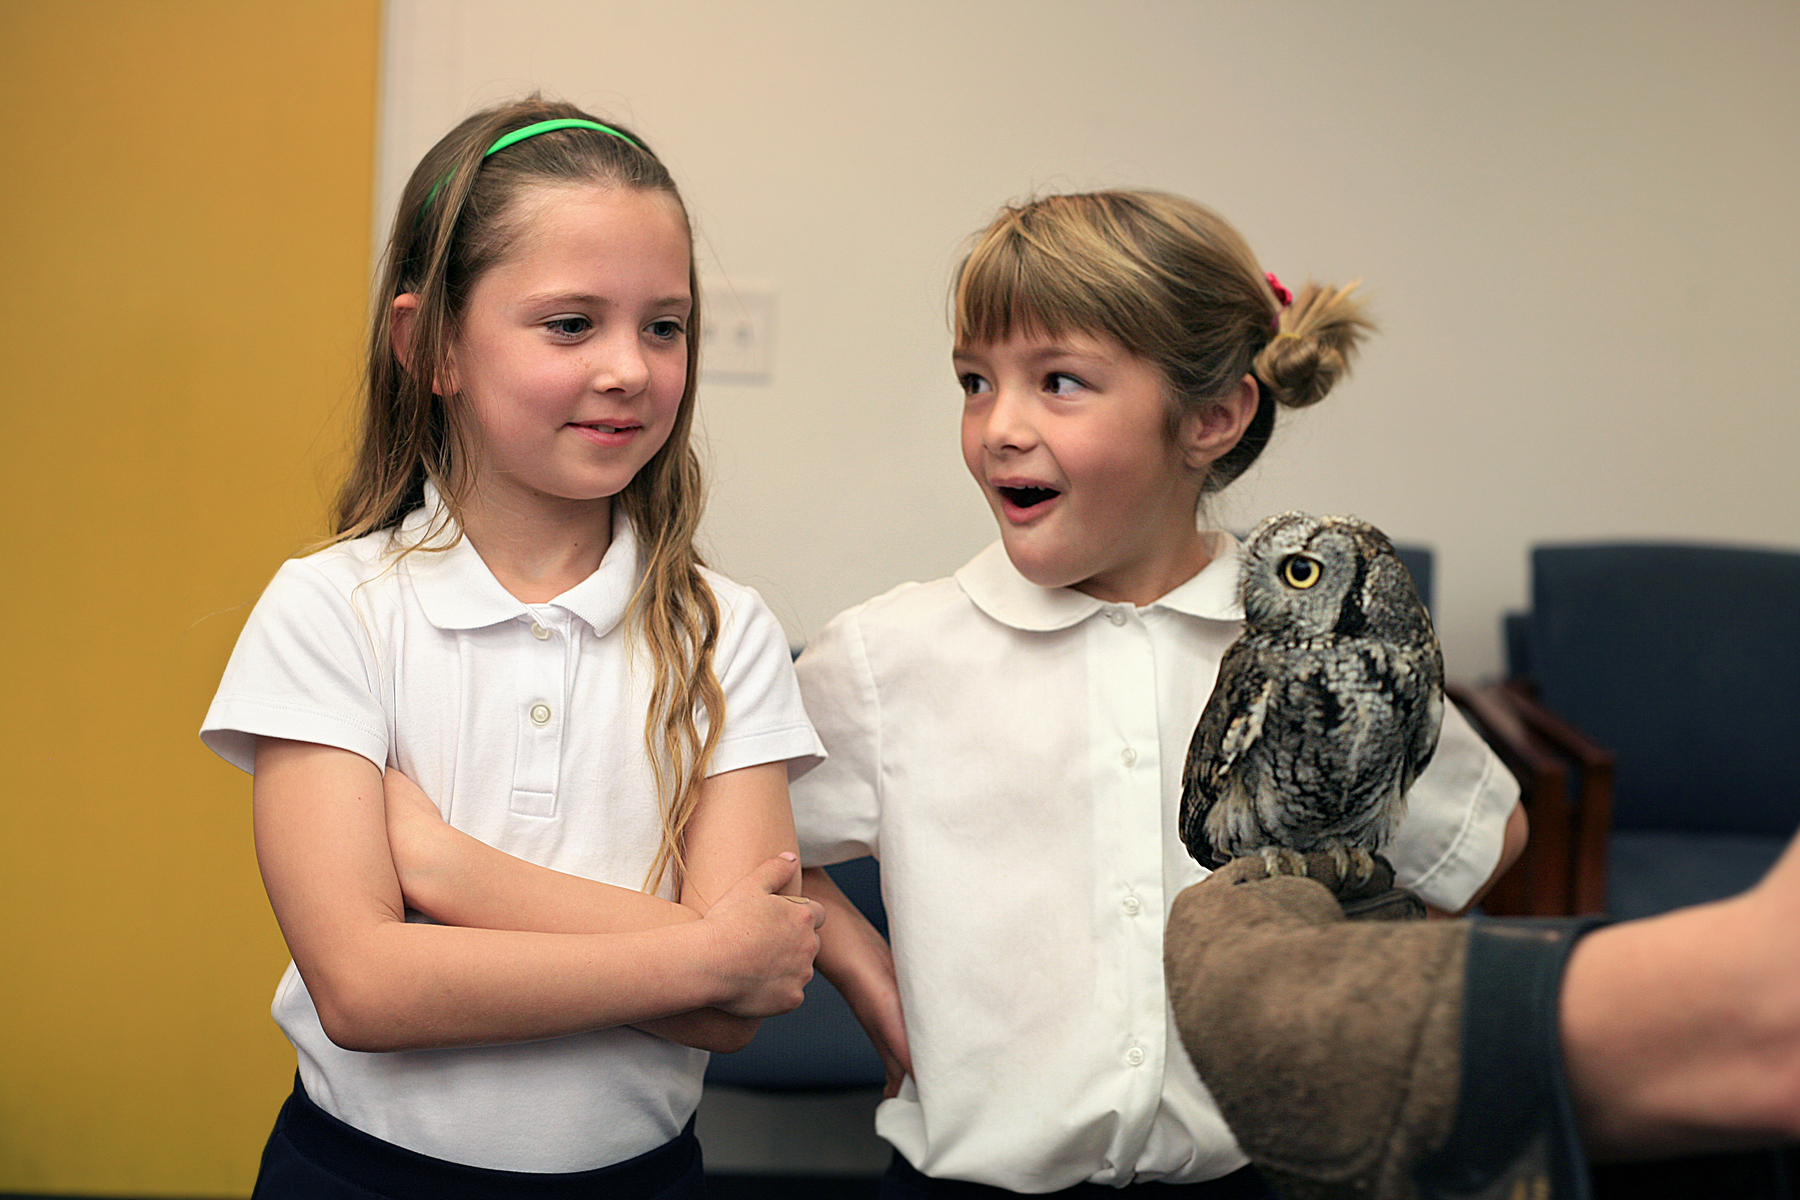 Harbor Day first graders Sheridan Hofer, 6, and Kaitlyn Dostert, 7, meet Gus, a Western screech owl, when the Traveling Scientist visited the school on Friday.